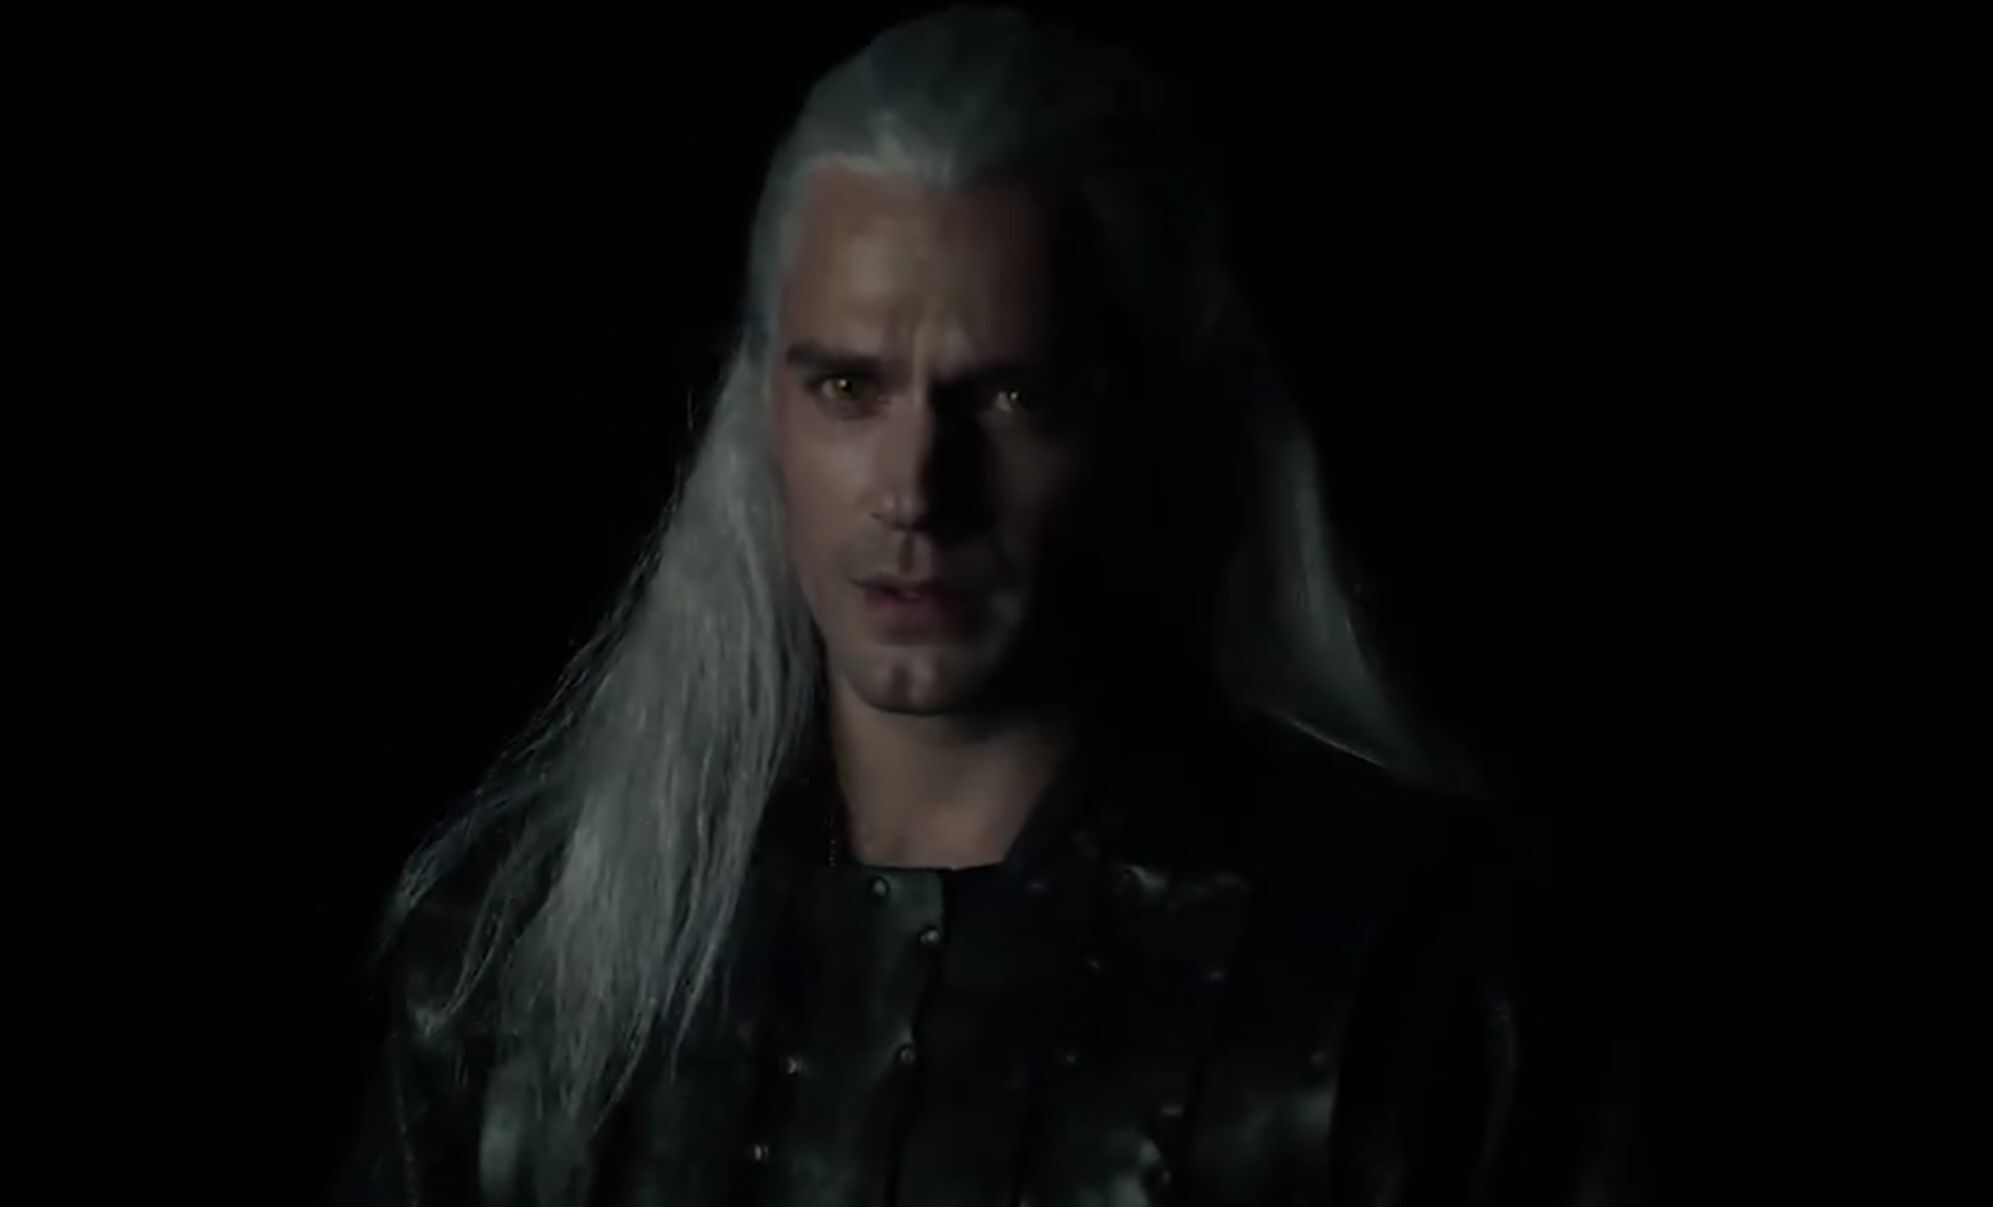 Netflix's Witcher series will debut later this year